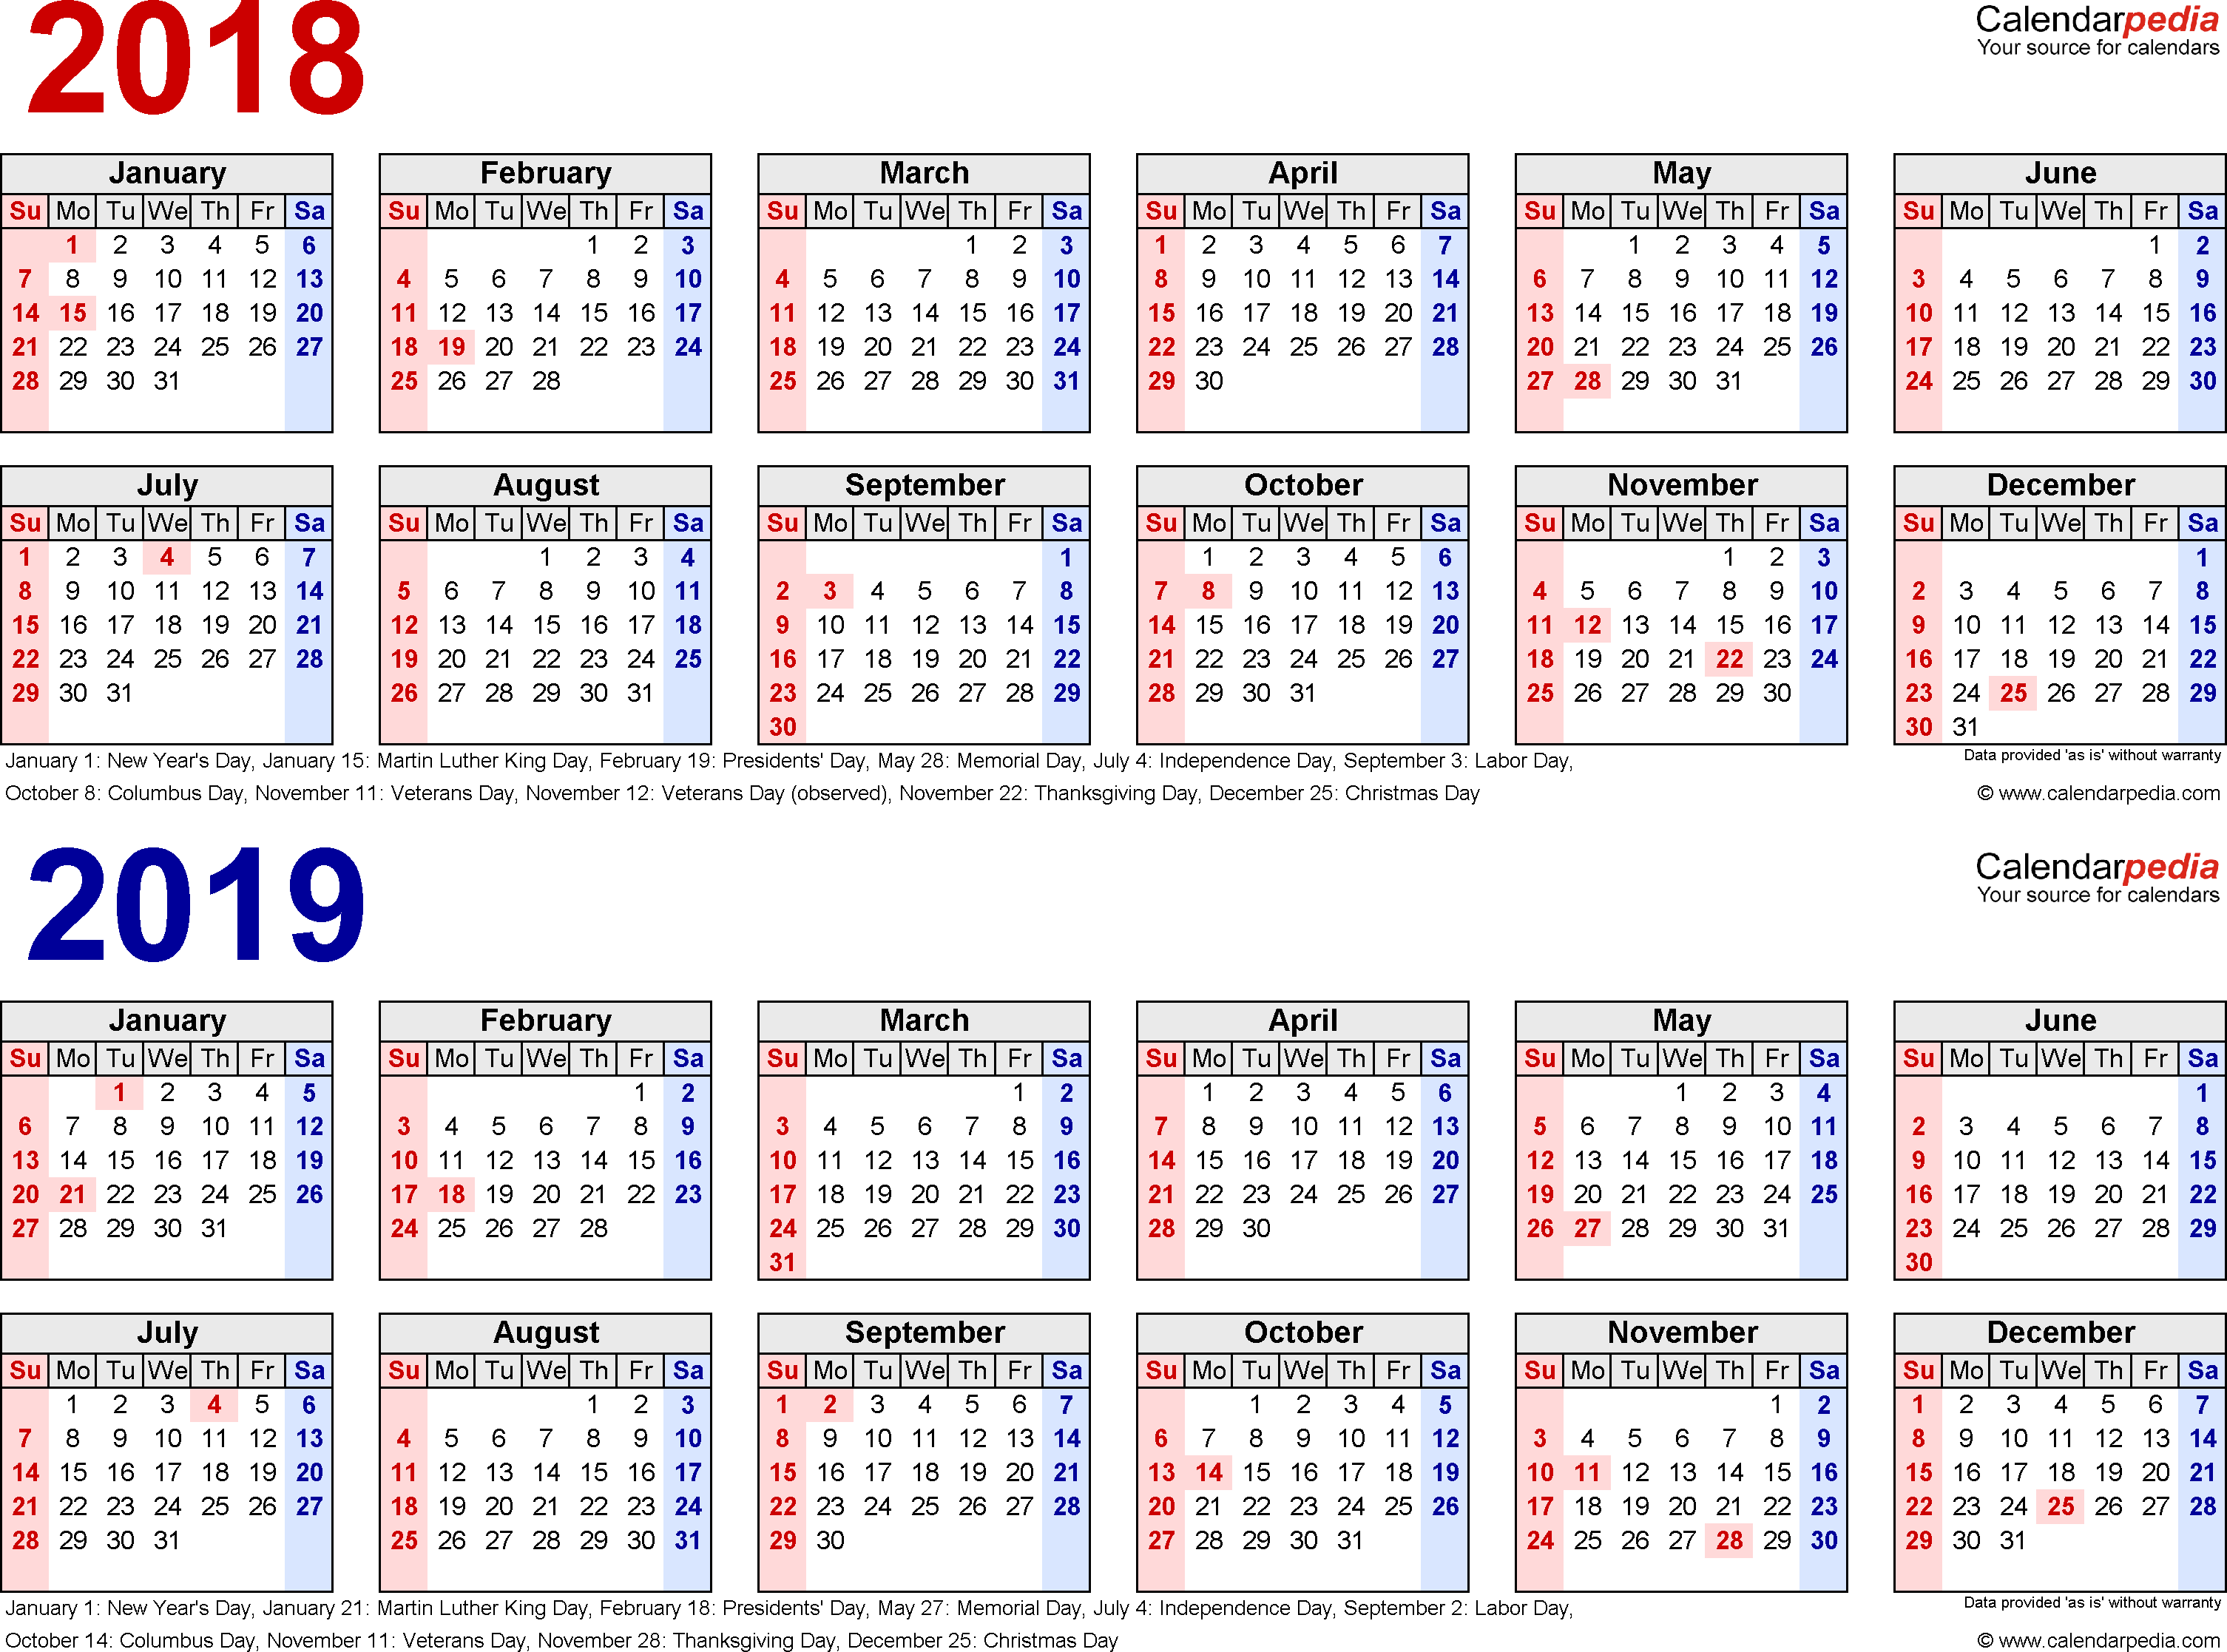 Template 1: Excel template for two year calendar 2018/2019 (landscape orientation, 1 page, in red and blue)